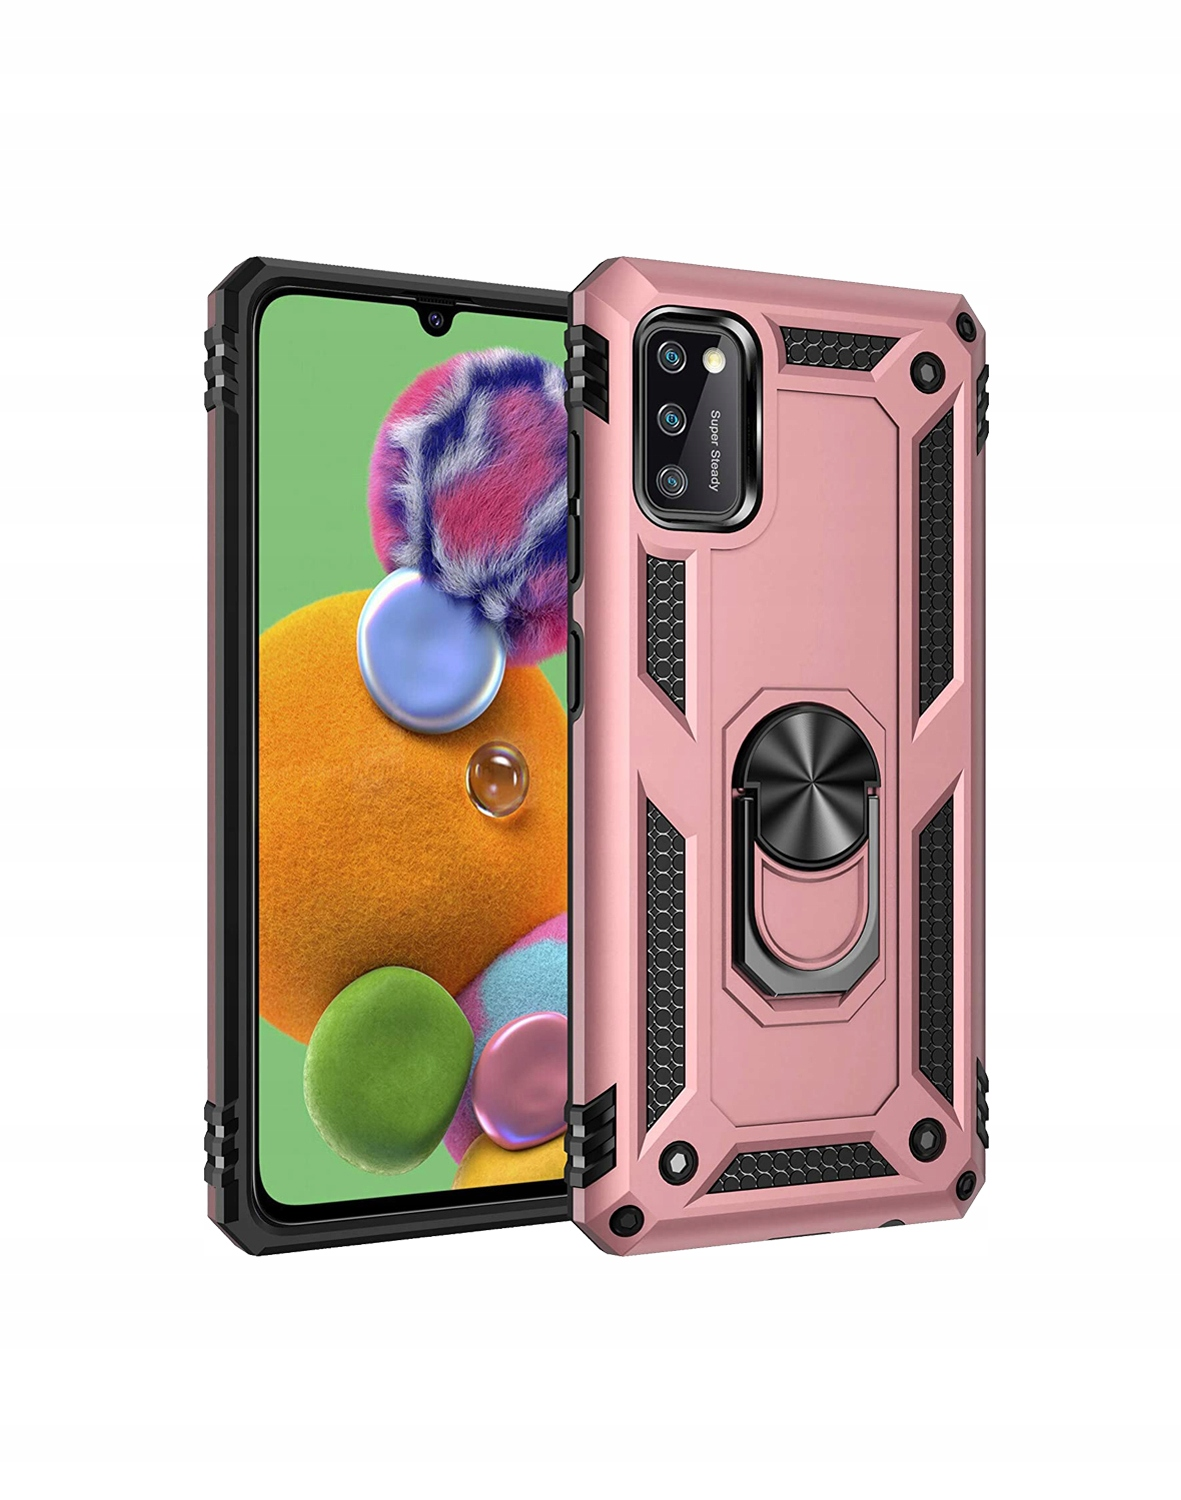 Ringarmor Etui Case Obudowa Do Galaxy A41